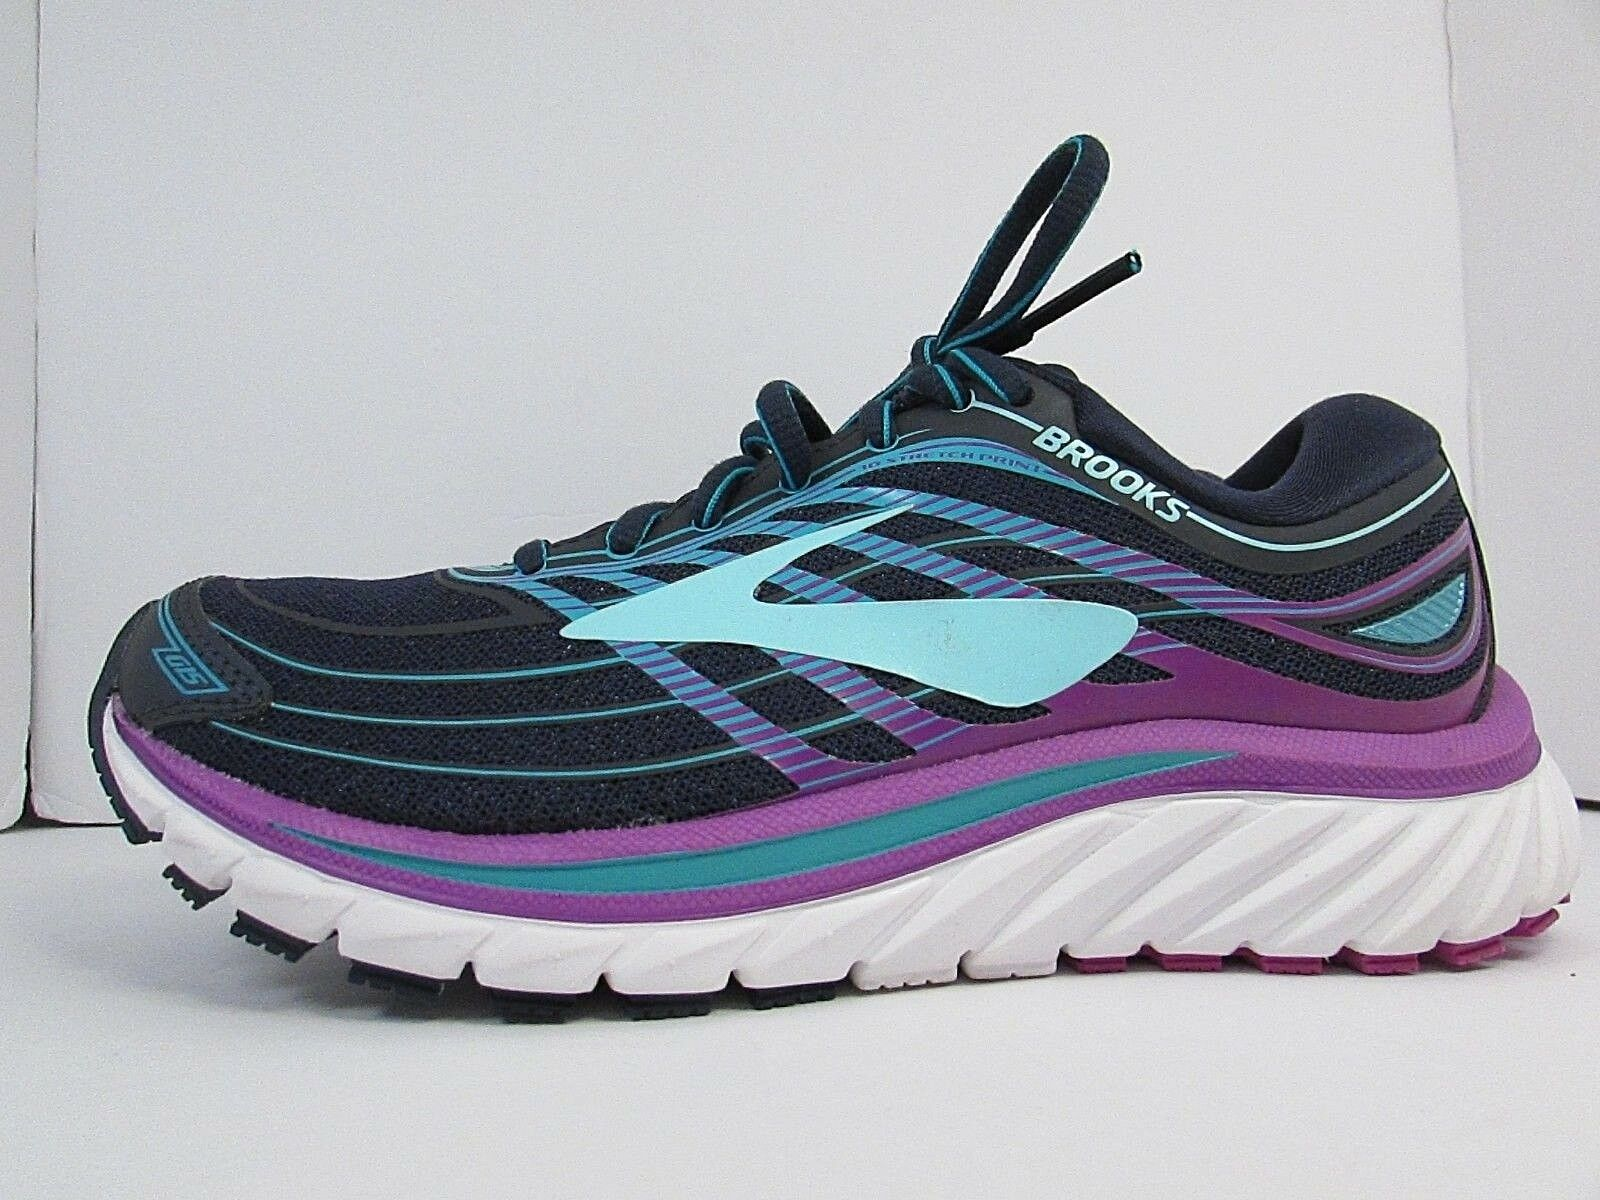 WOMEN'S BROOKS GLYCERIN GLYCERIN GLYCERIN 15 size 5.5  I WORN AROUND 5 MILES  RUNNING TRAINING e774e2